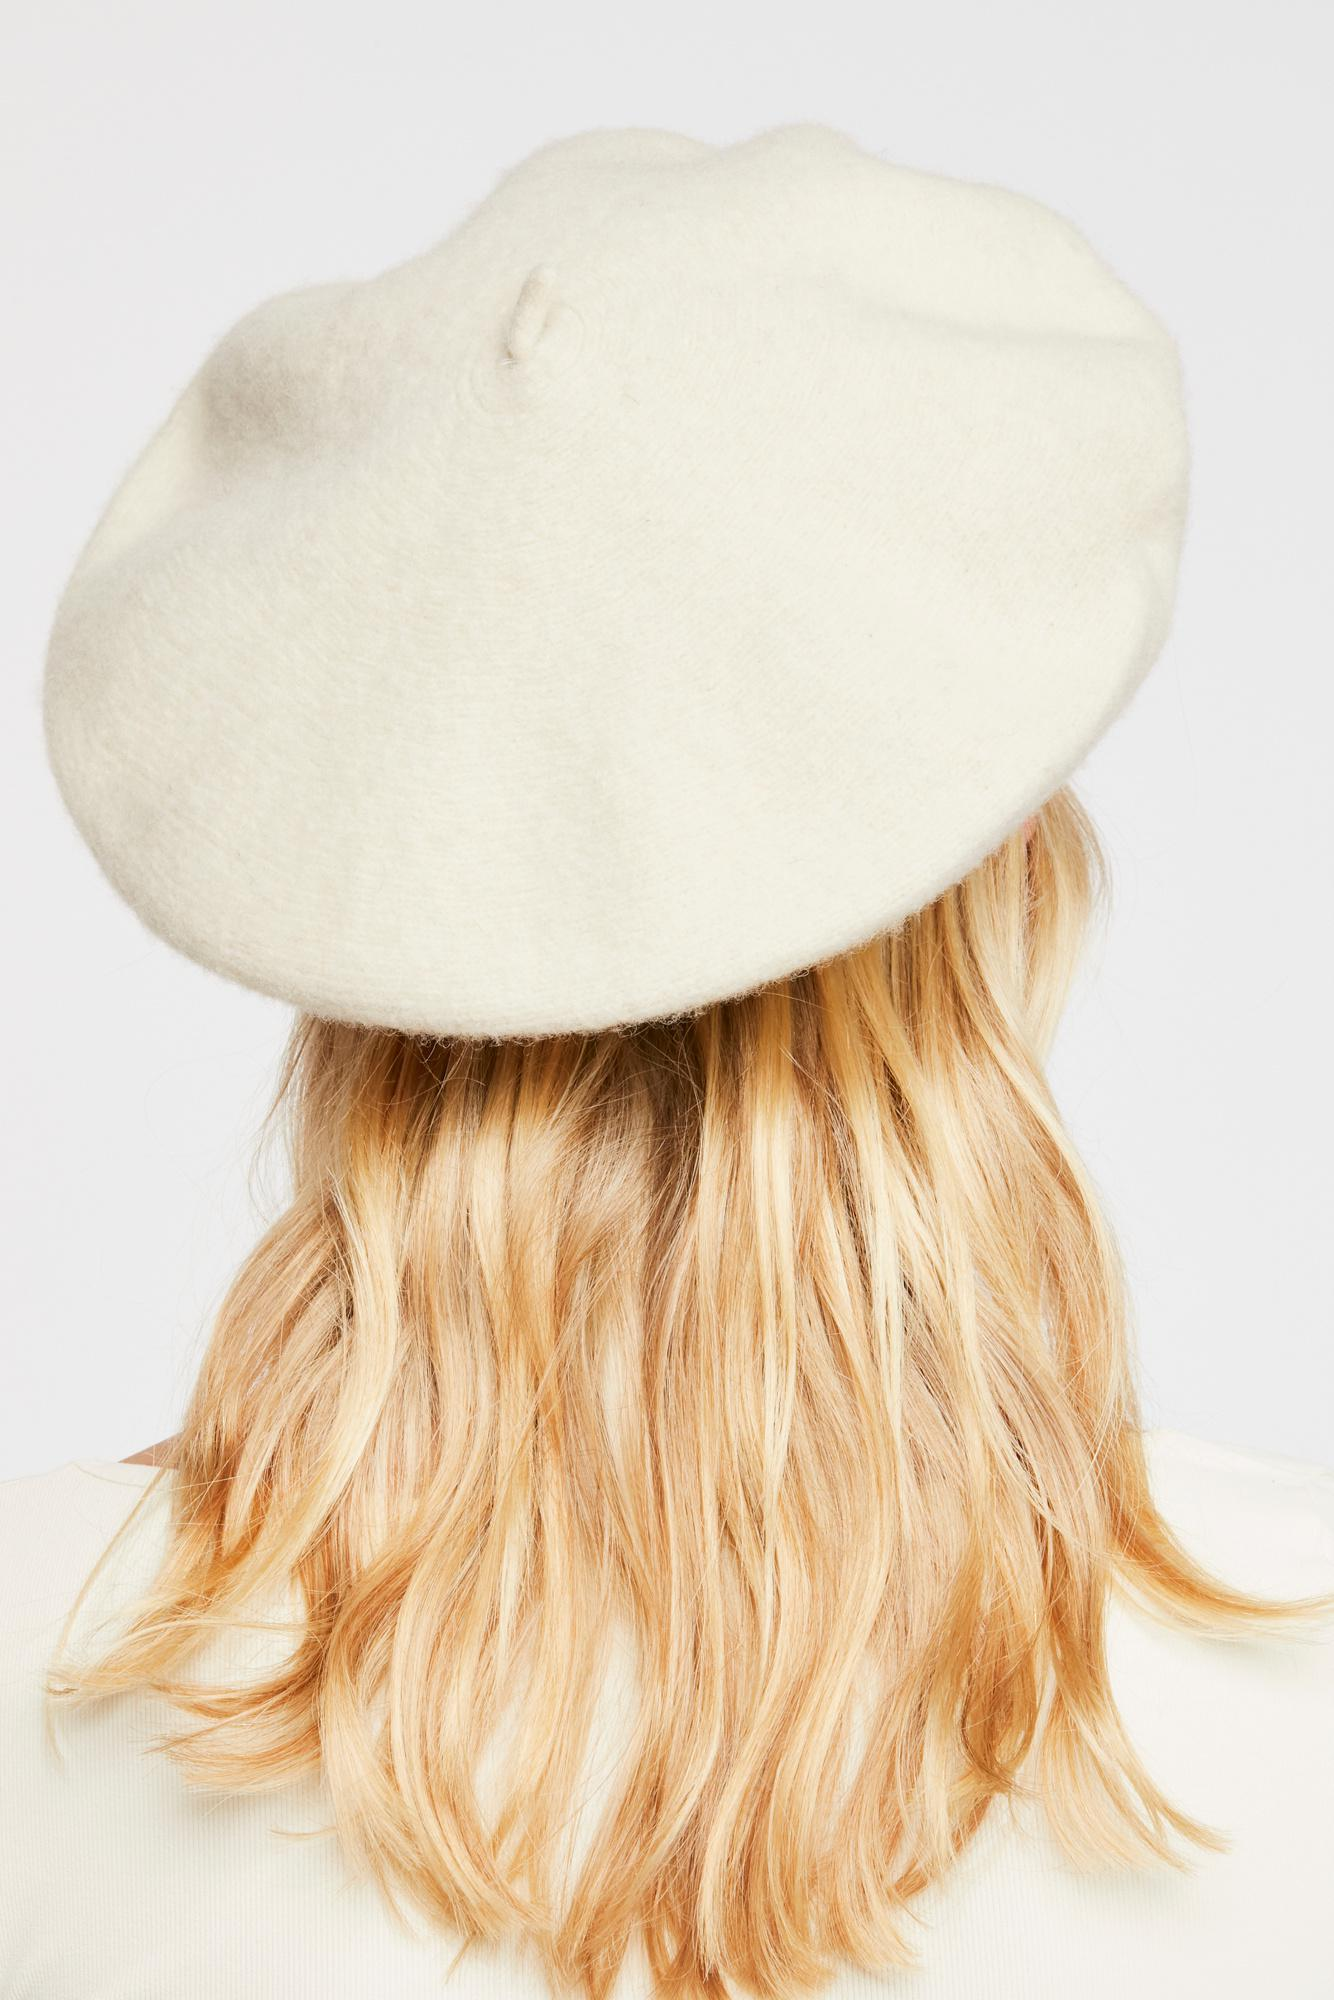 Lyst - Free People Margot Slouchy Beret in Natural 12edd8f6160